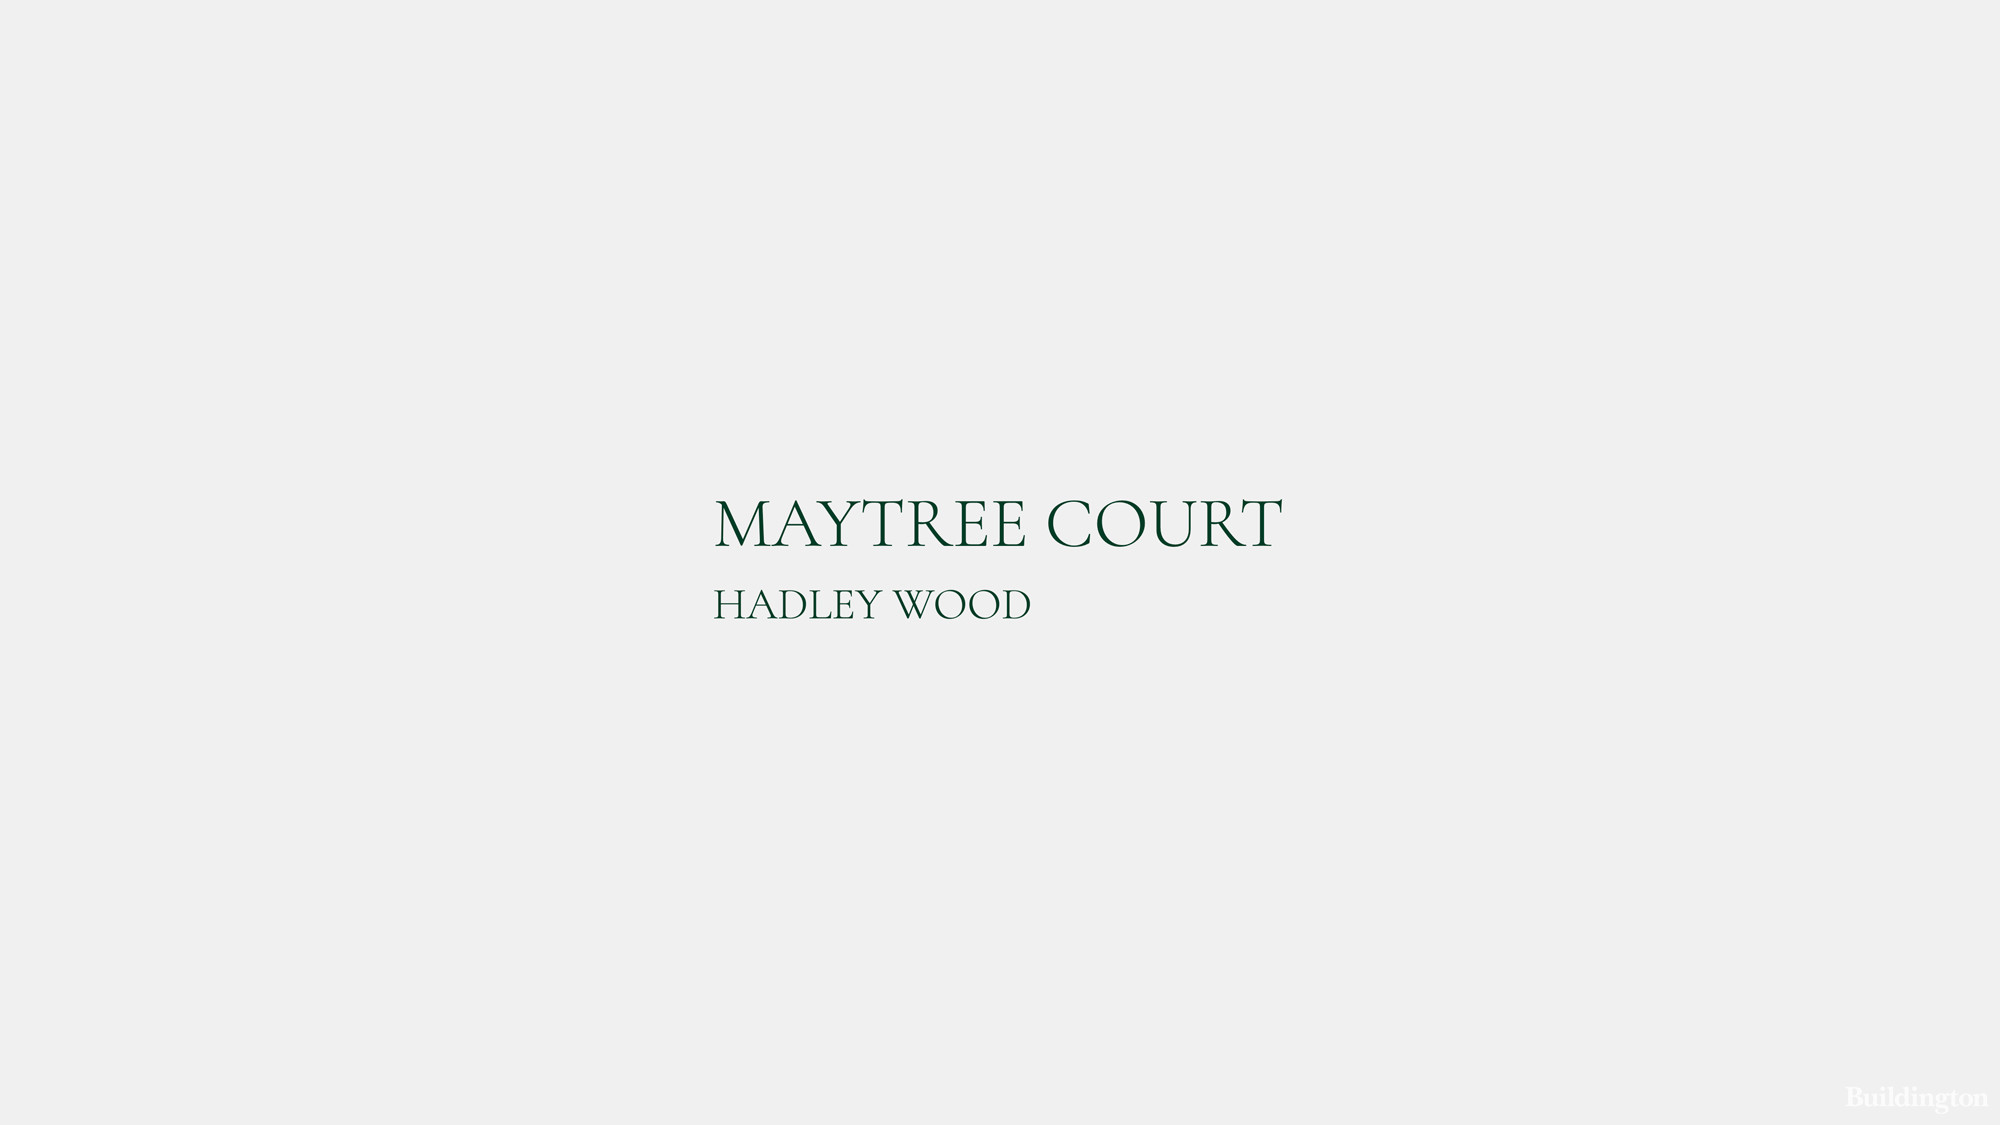 Maytree Court development by Troy Homes logo.